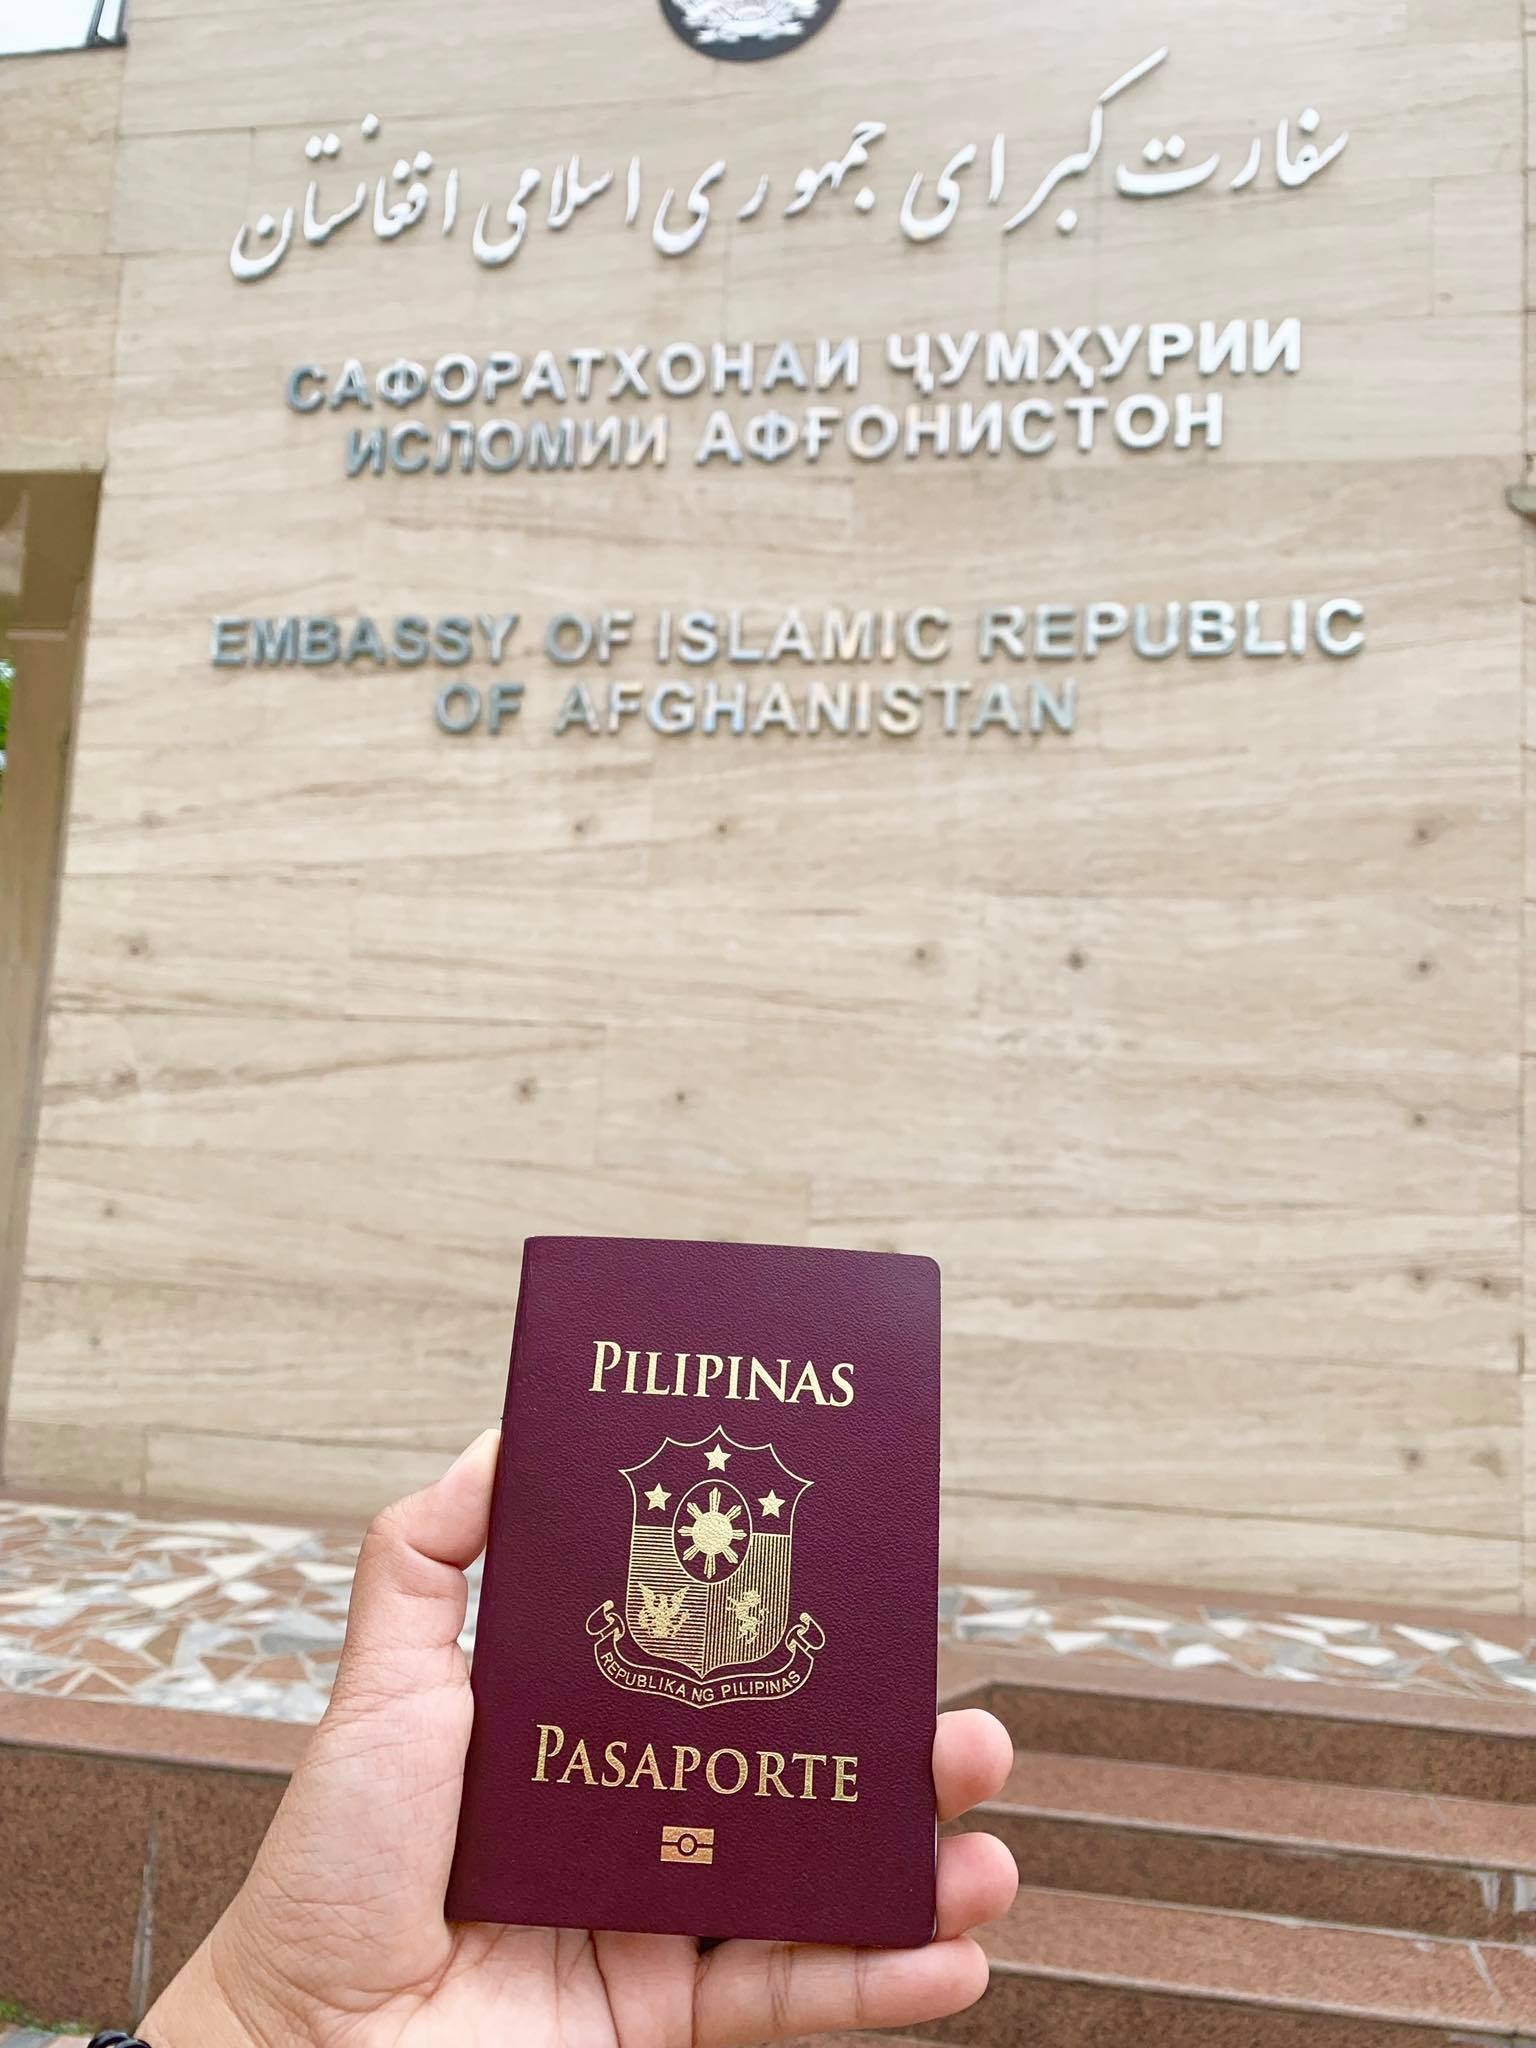 Kach Solo Travels in 2019 Getting a tourist visa for Afghanistan2.jpg